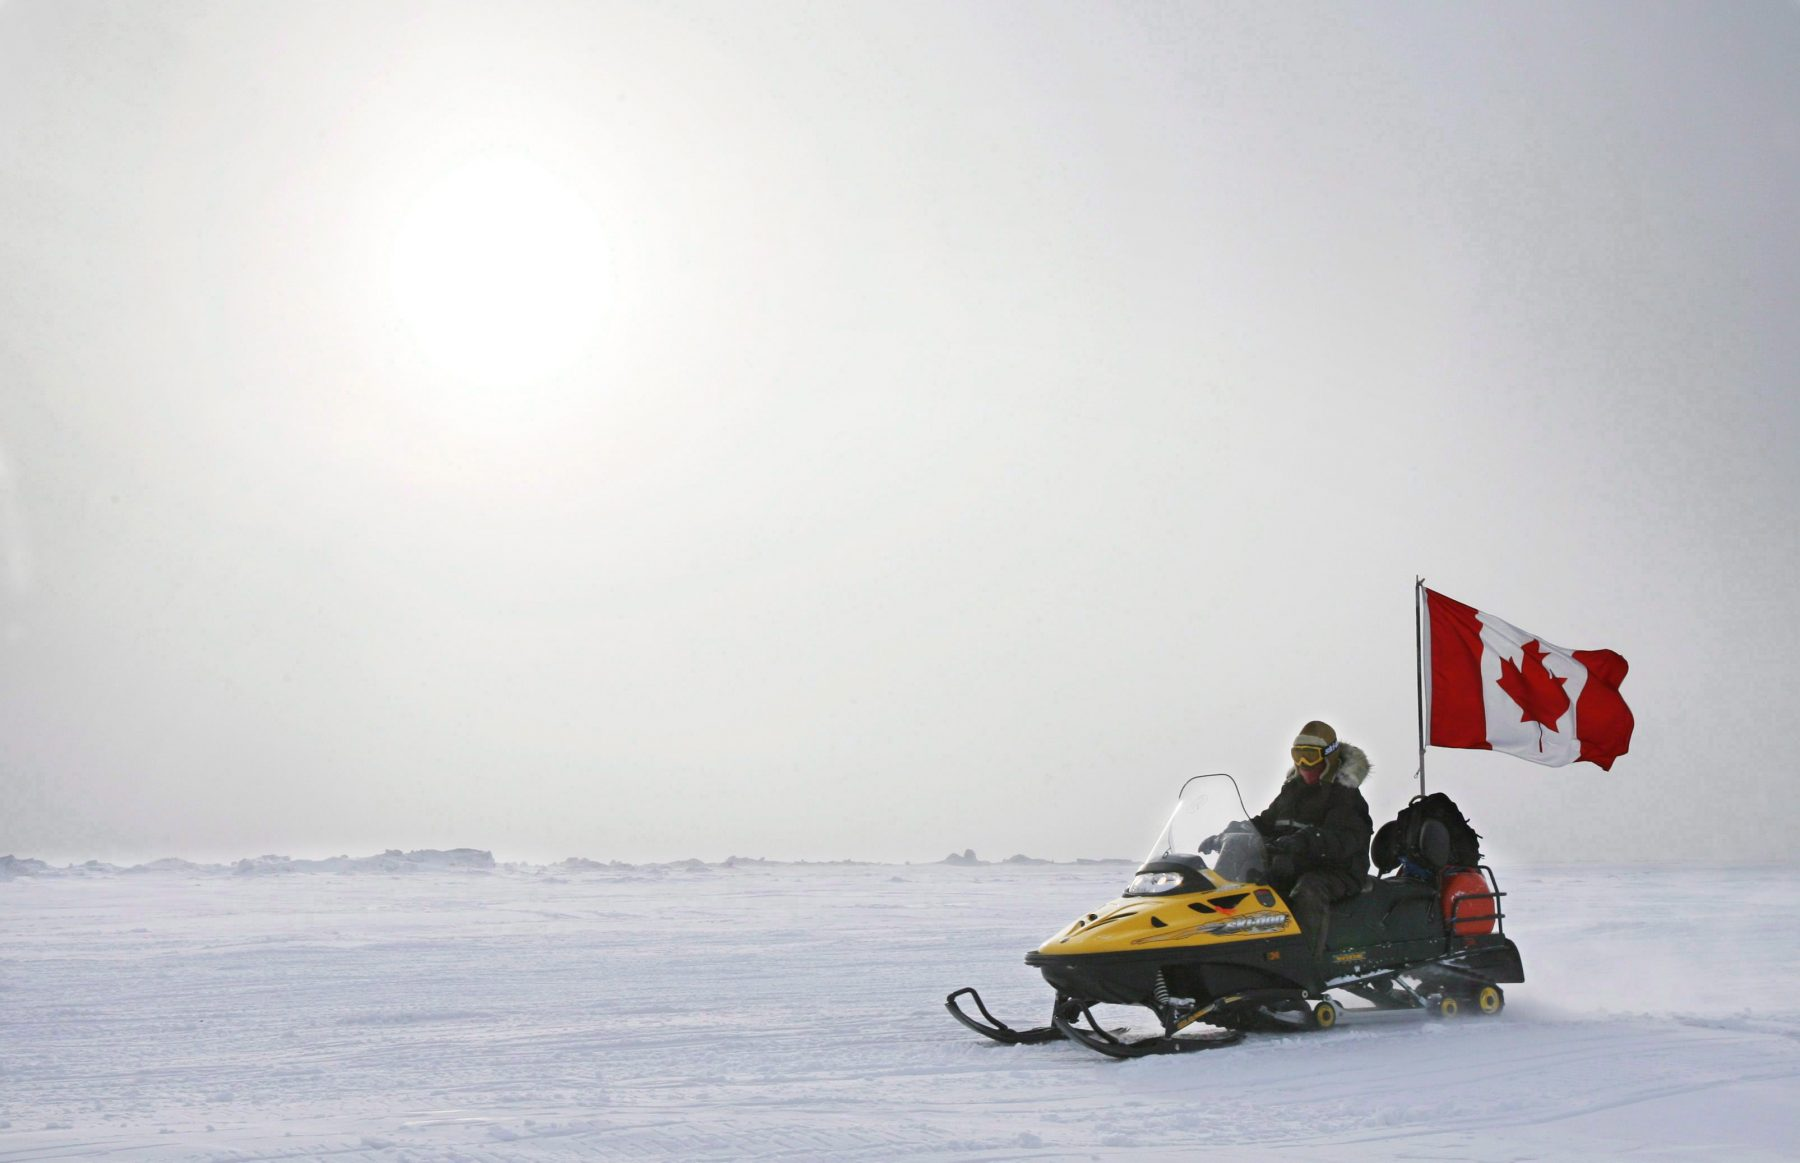 In the Arctic as in space, Russia and West can look past differences to pursue common goals: study